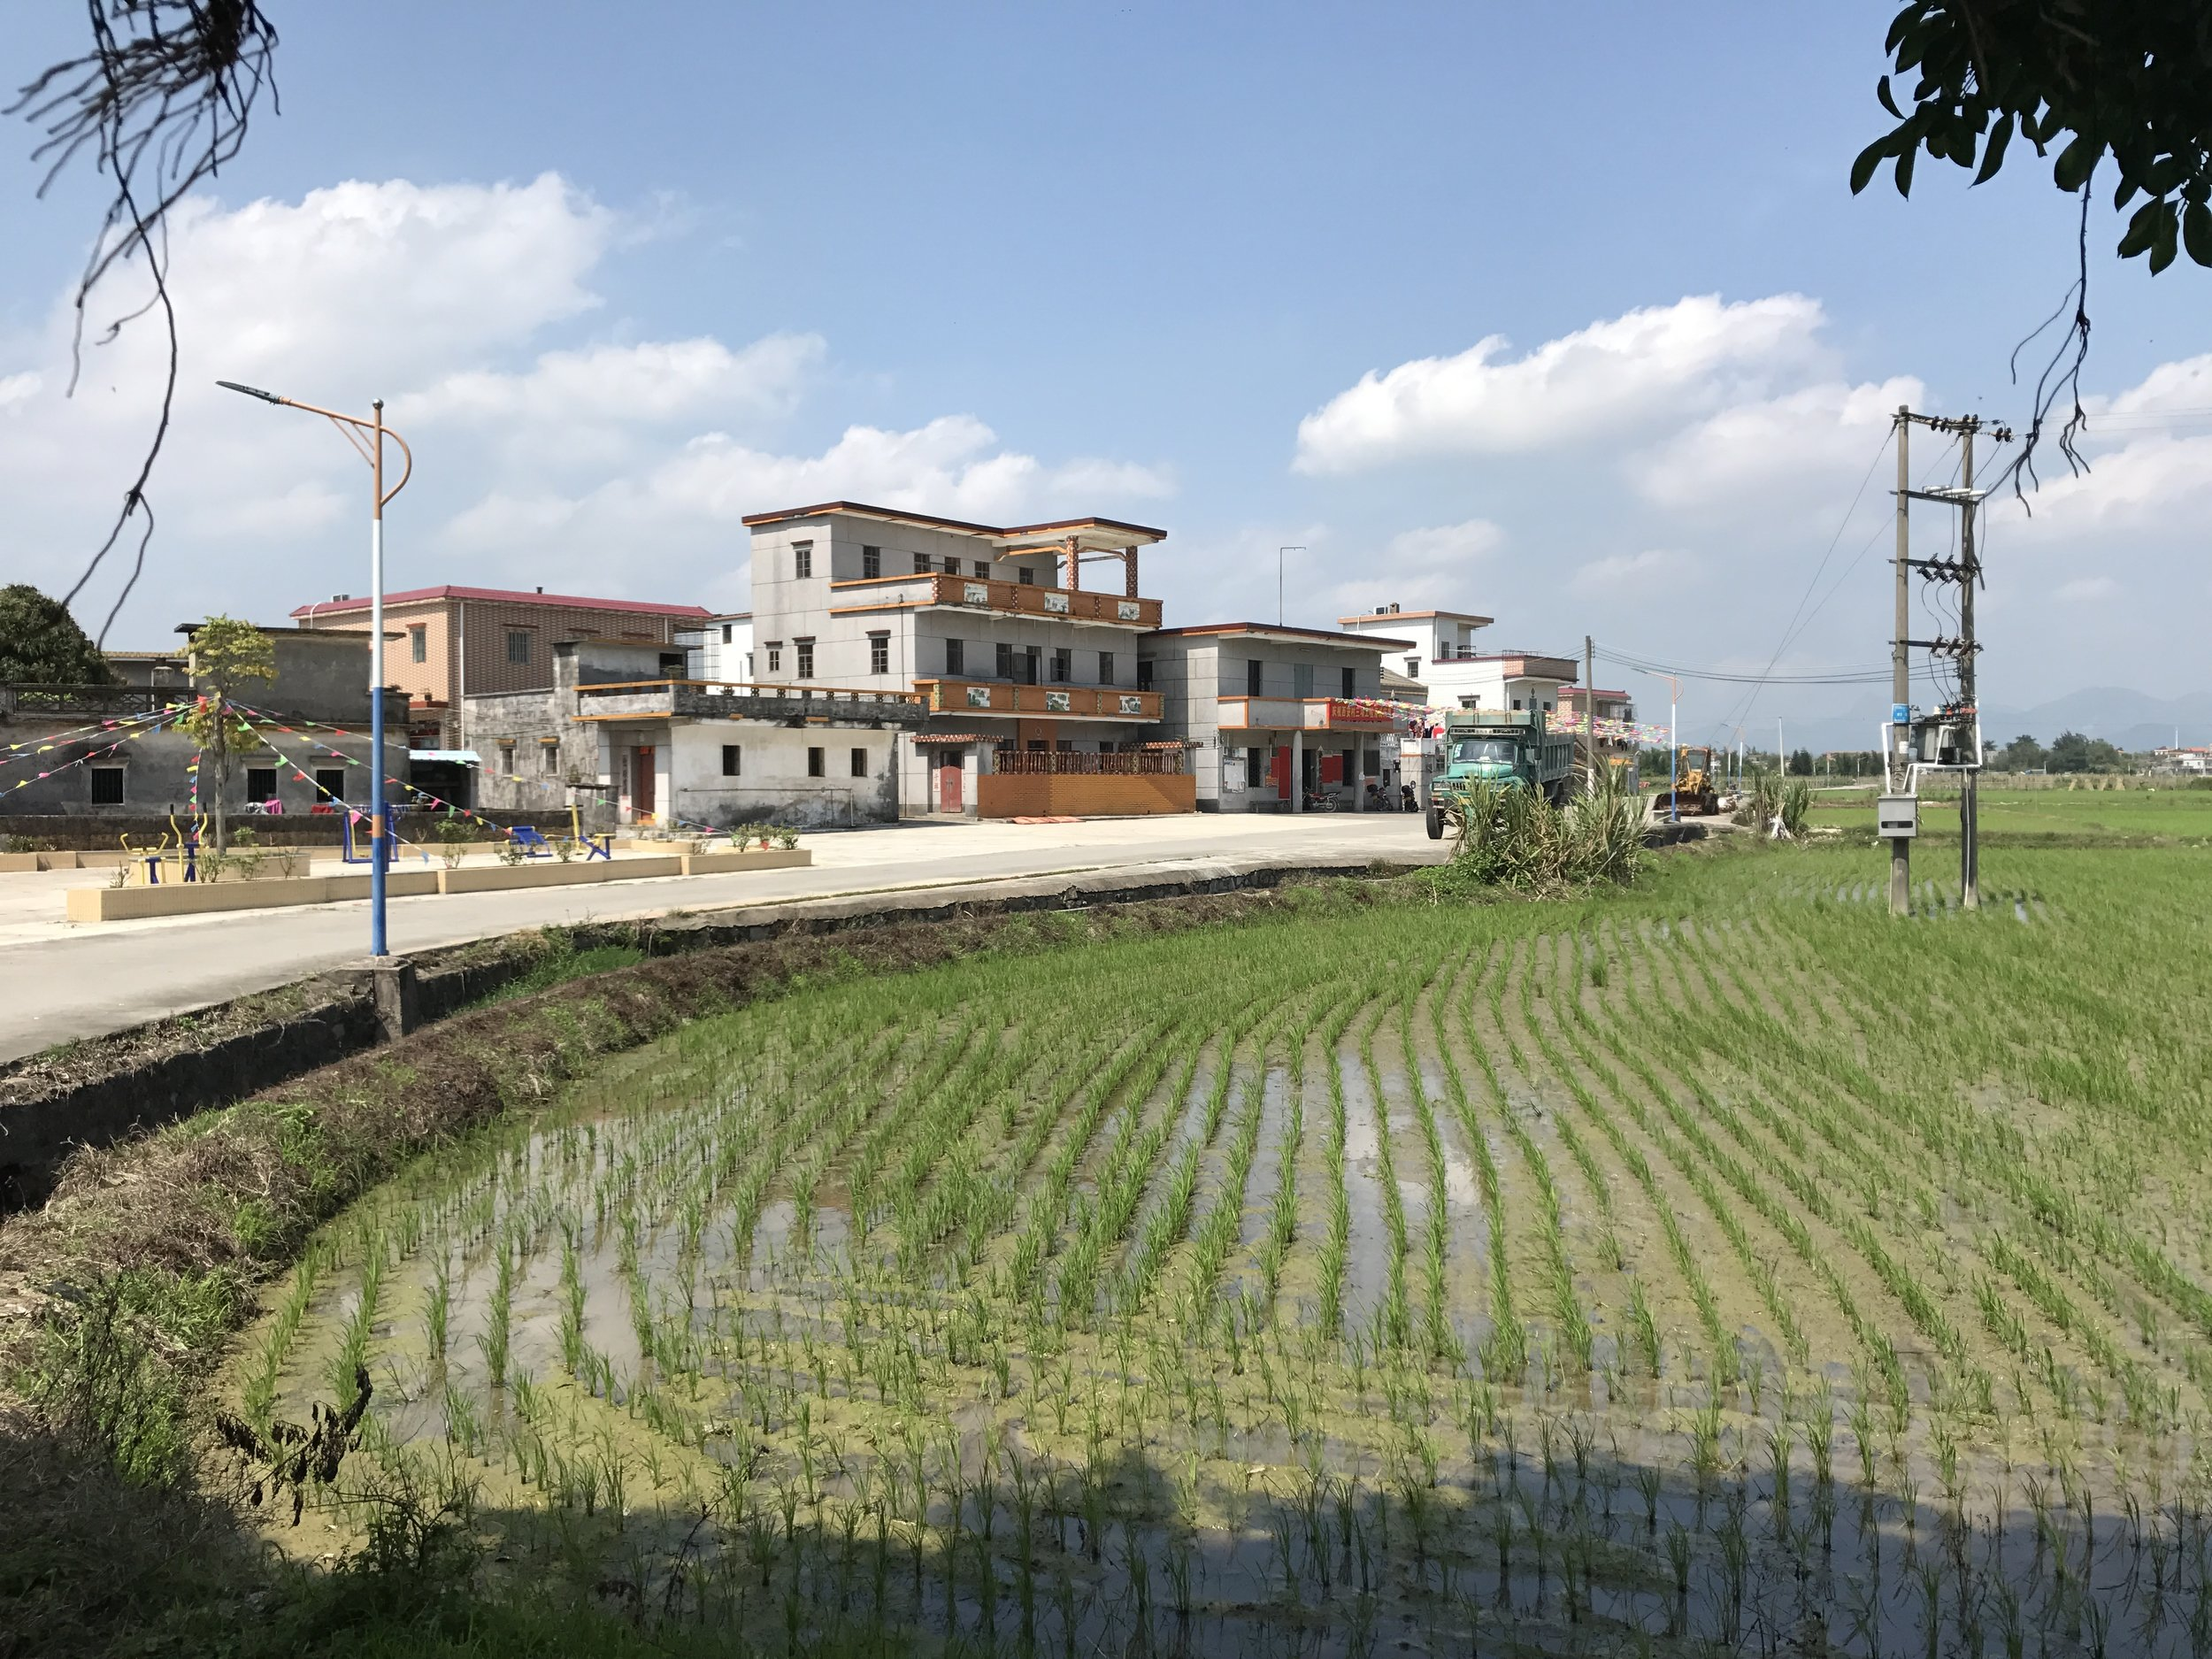 My mother's village in Toisan, China. Photo by Huiying B. Chan